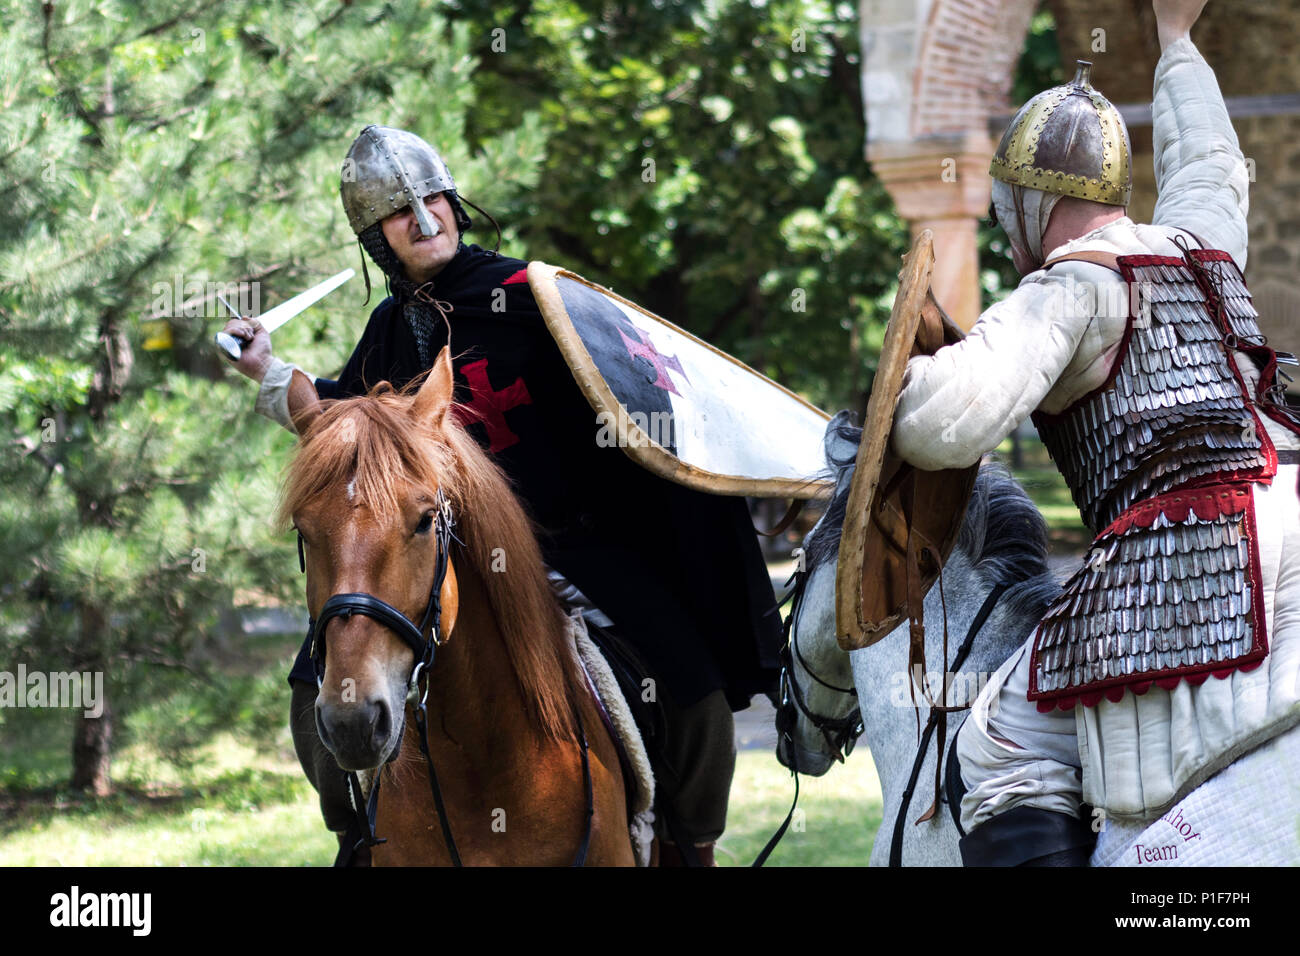 Nis, Serbia - June 10, 2018: Two medieval knight fighting with sword on horses in nature. Middle ages battle concept Stock Photo